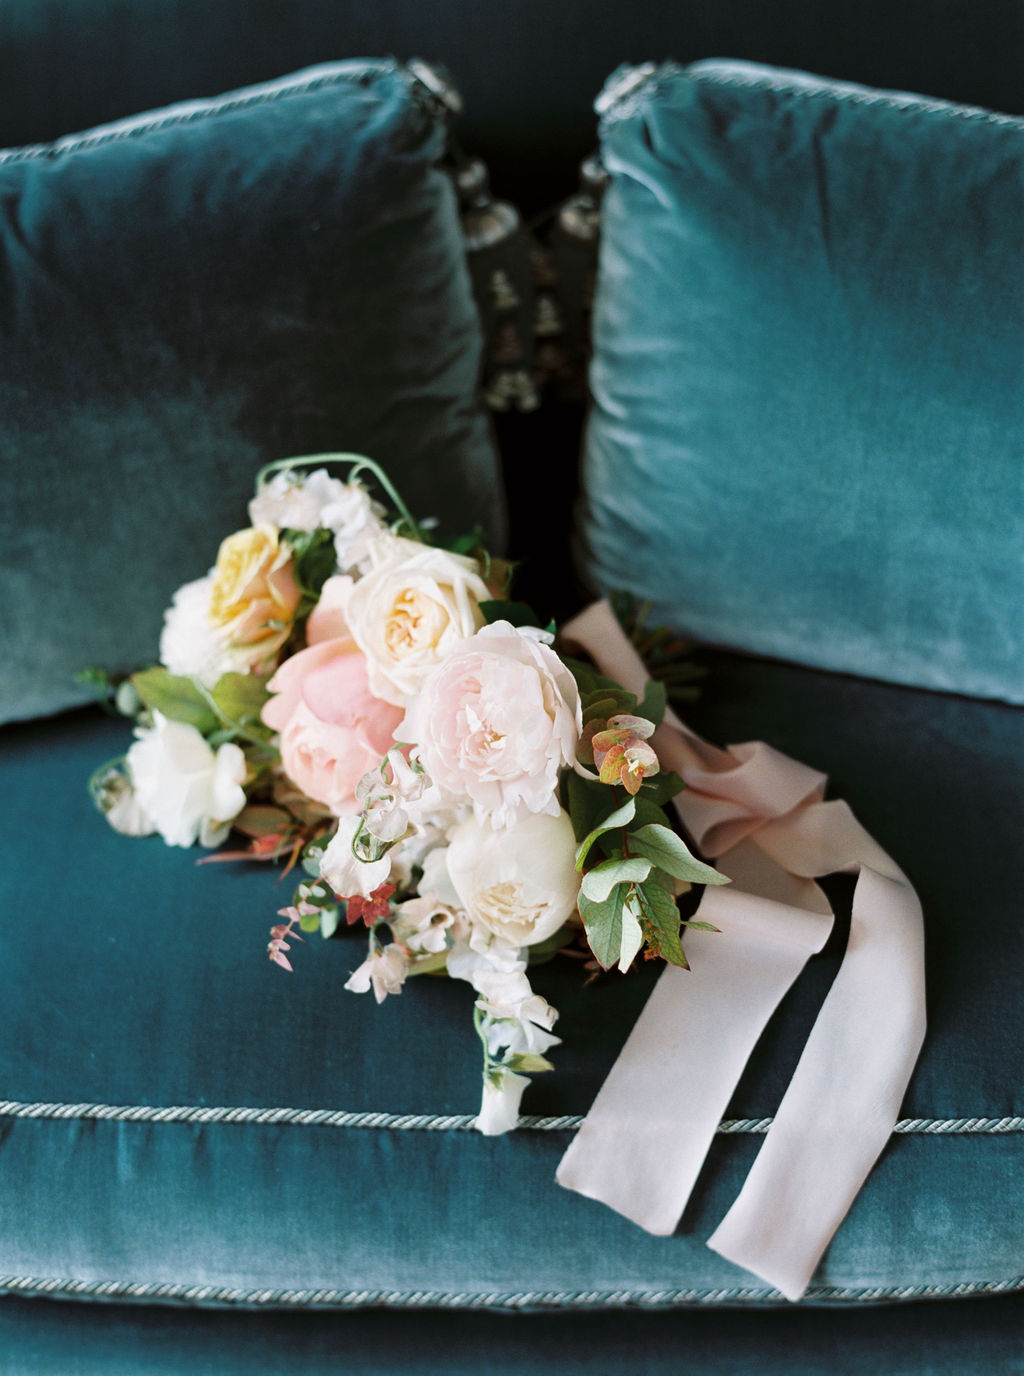 travellur_photoshoot__elegance_Jardin_de_Chateau_de_Villette_flowers_Floraison_paris_interiors_wedding_luxe_velvet.jpg